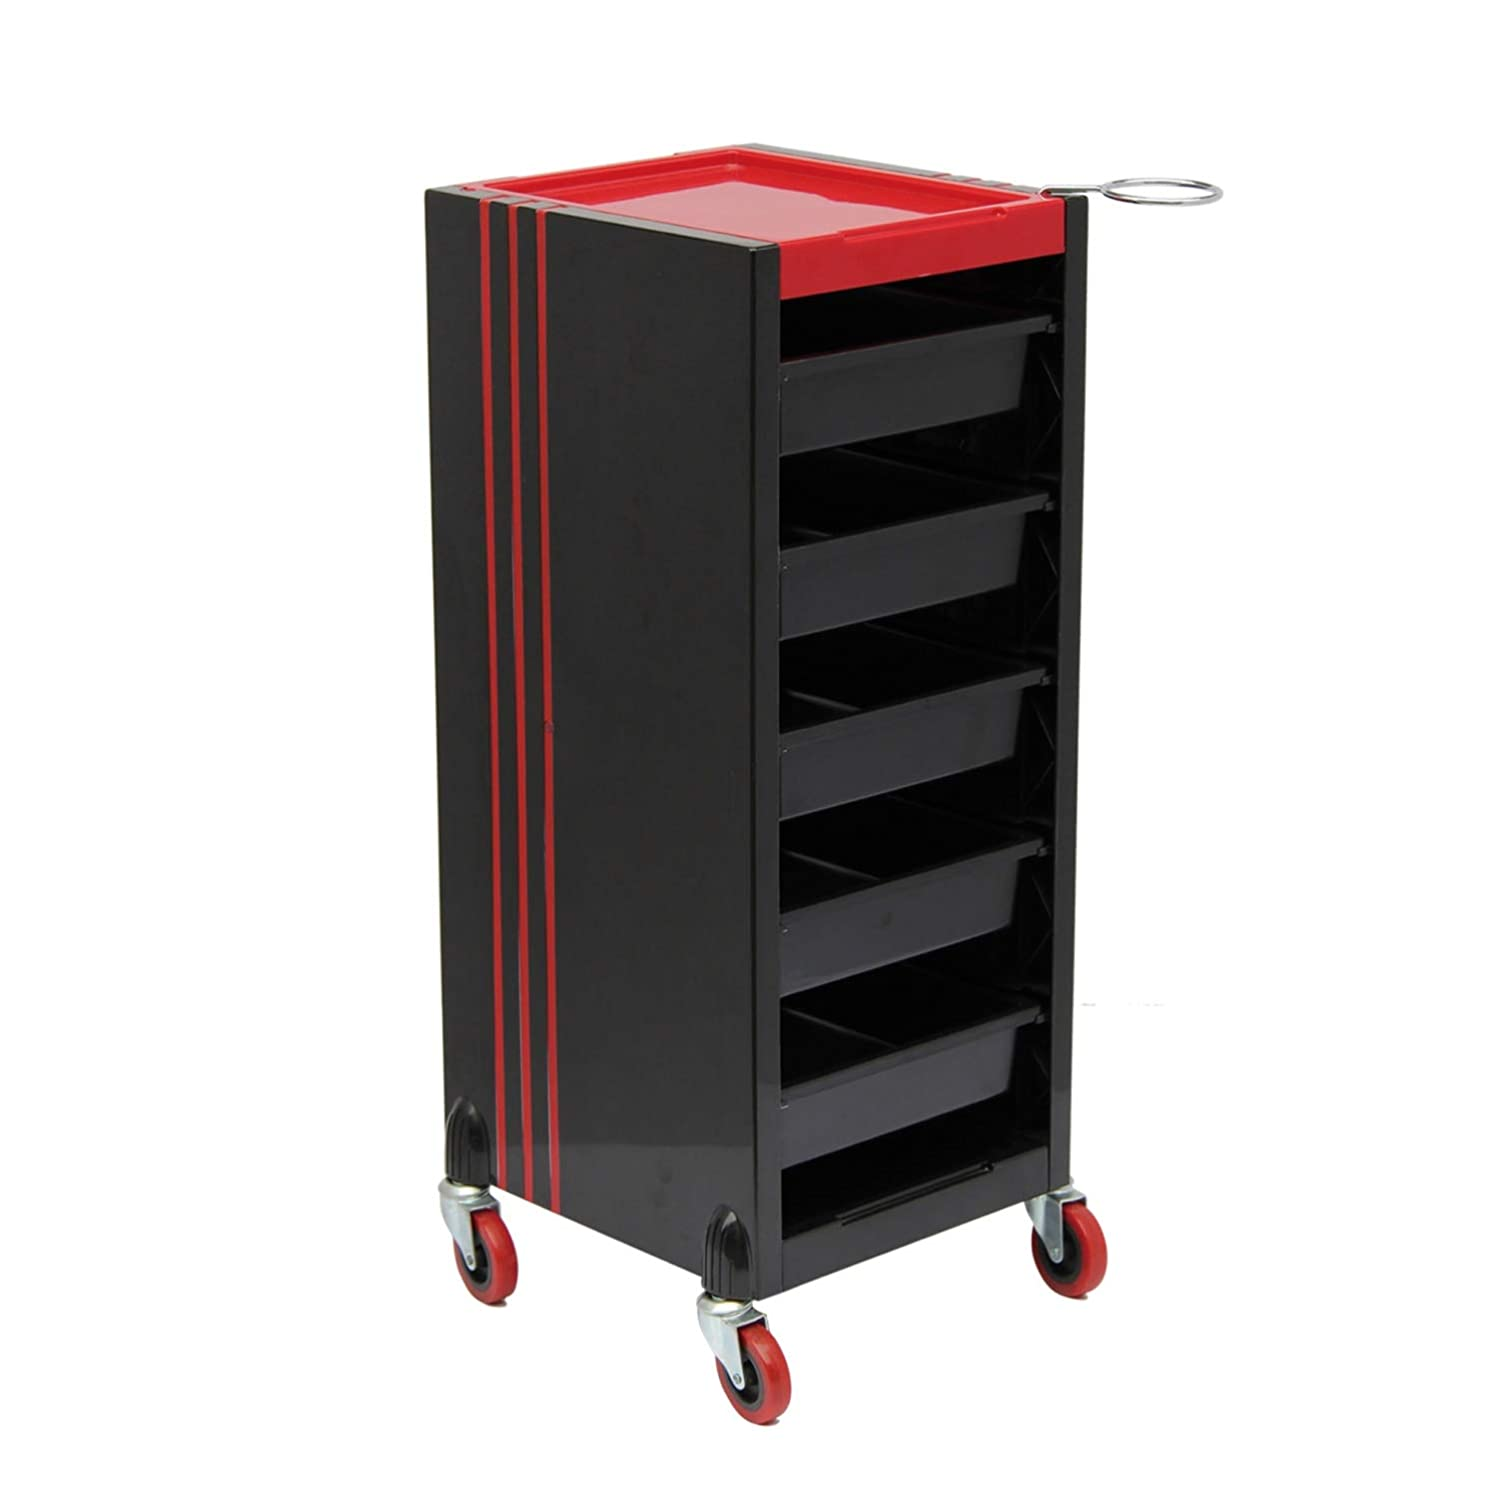 Amazon.com: ATCART 6 Tiers Salon Trolley Cart for Hair ...